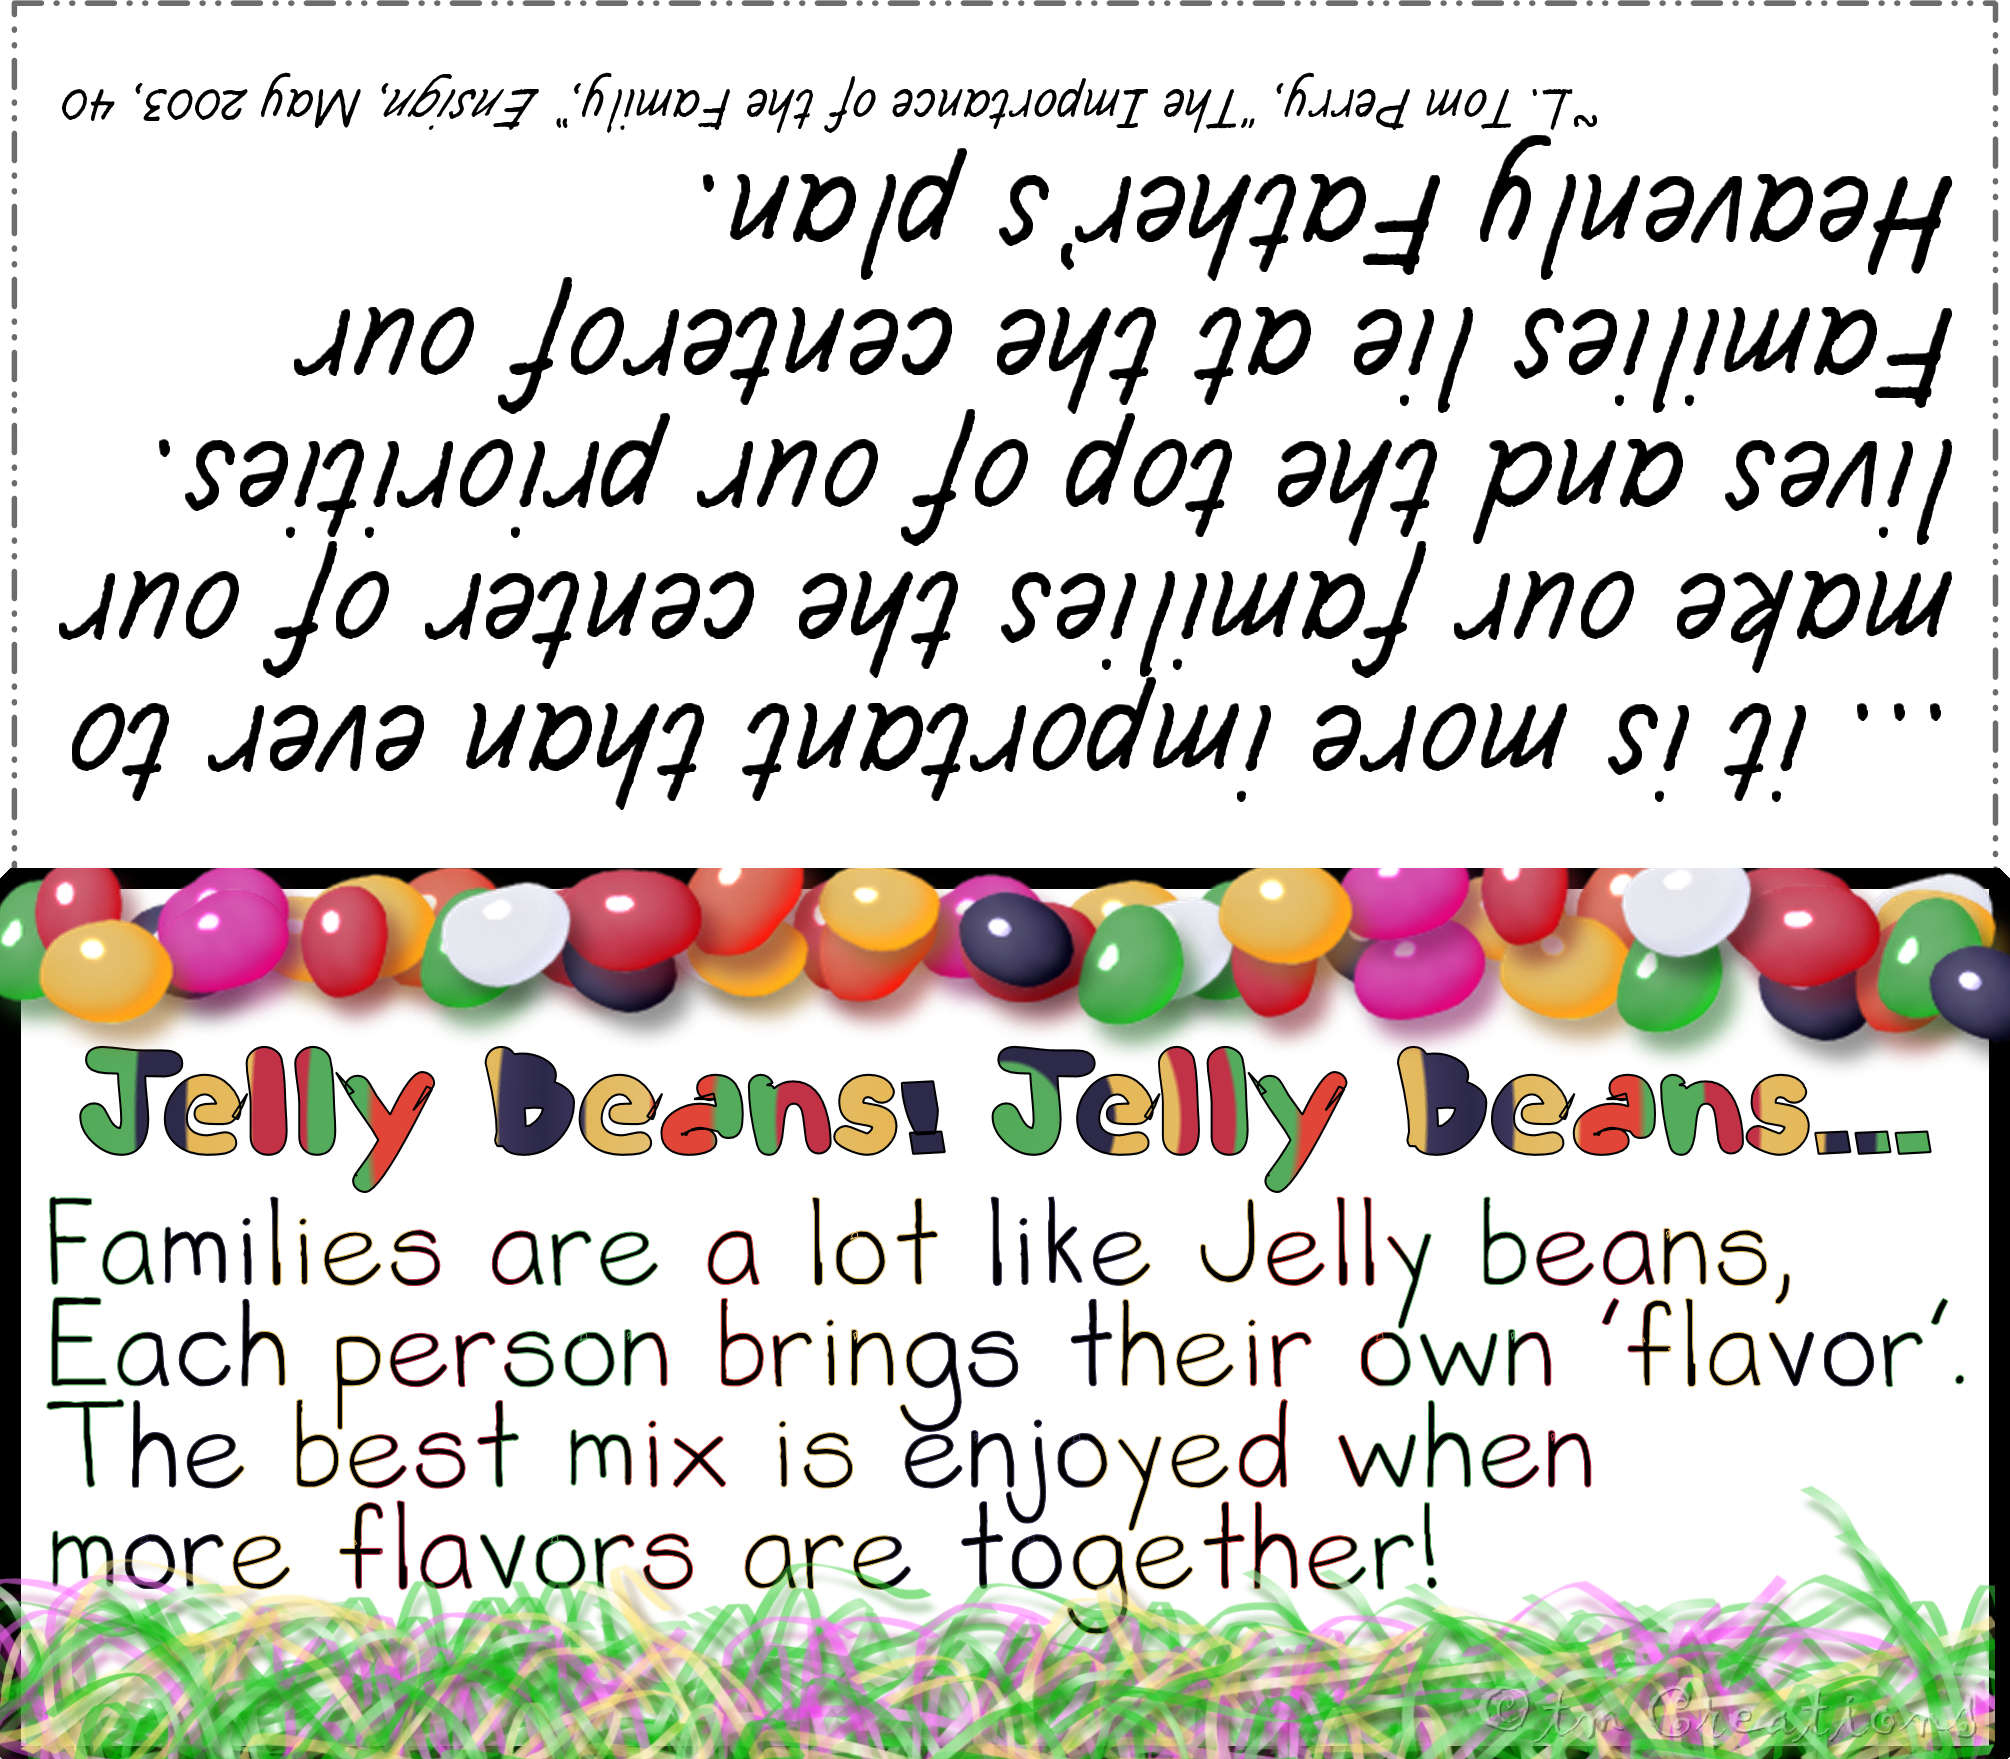 Jelly Beans clipart bean person Jelly tlm1 Mormon jelly beans